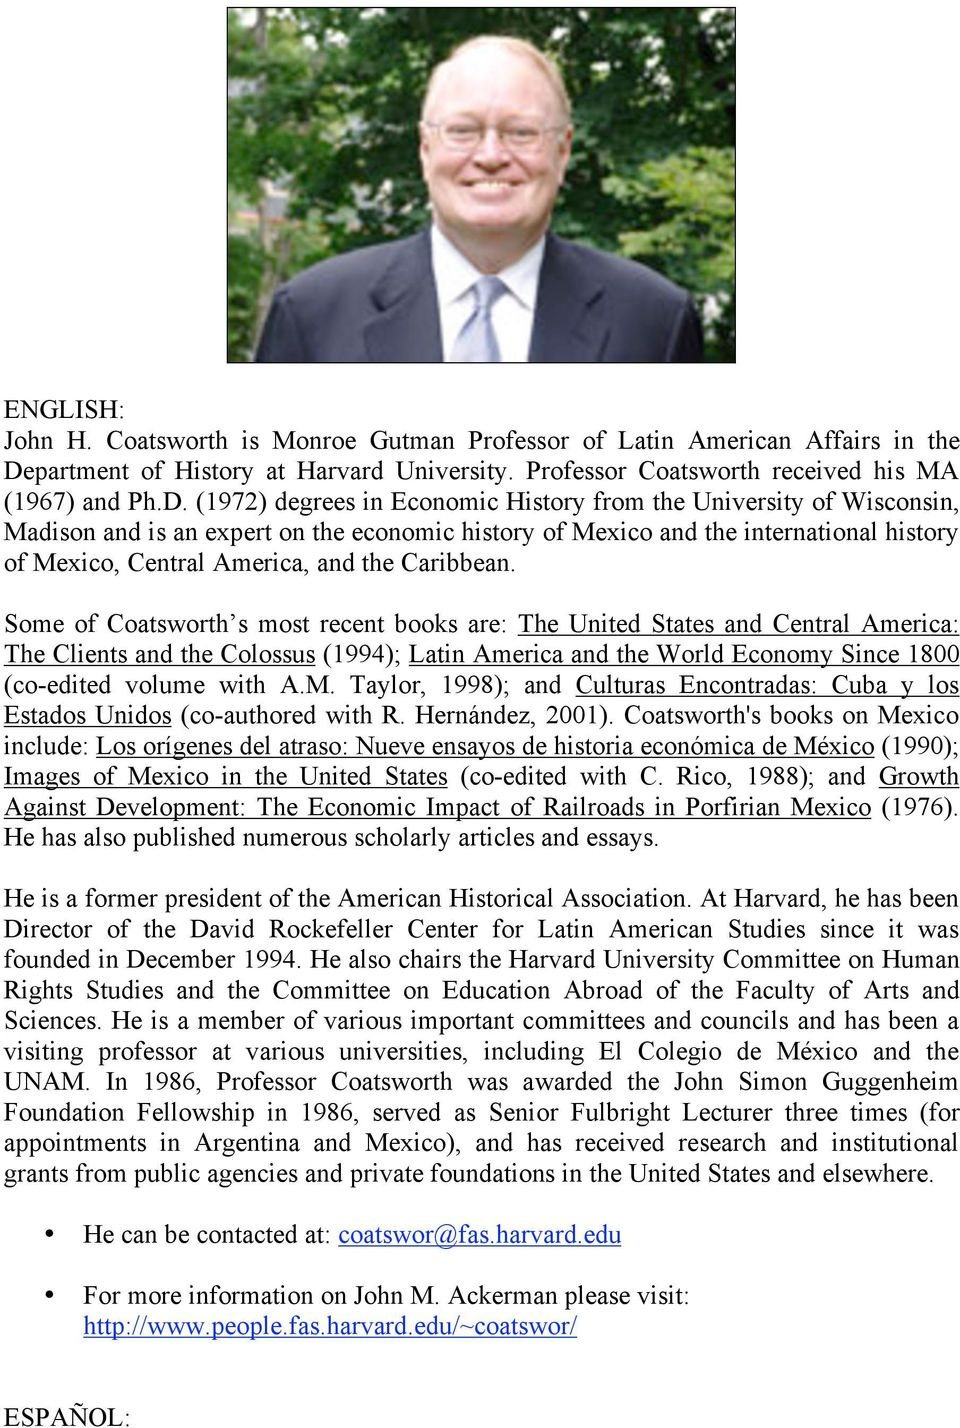 (1972) degrees in Economic History from the University of Wisconsin, Madison and is an expert on the economic history of Mexico and the international history of Mexico, Central America, and the